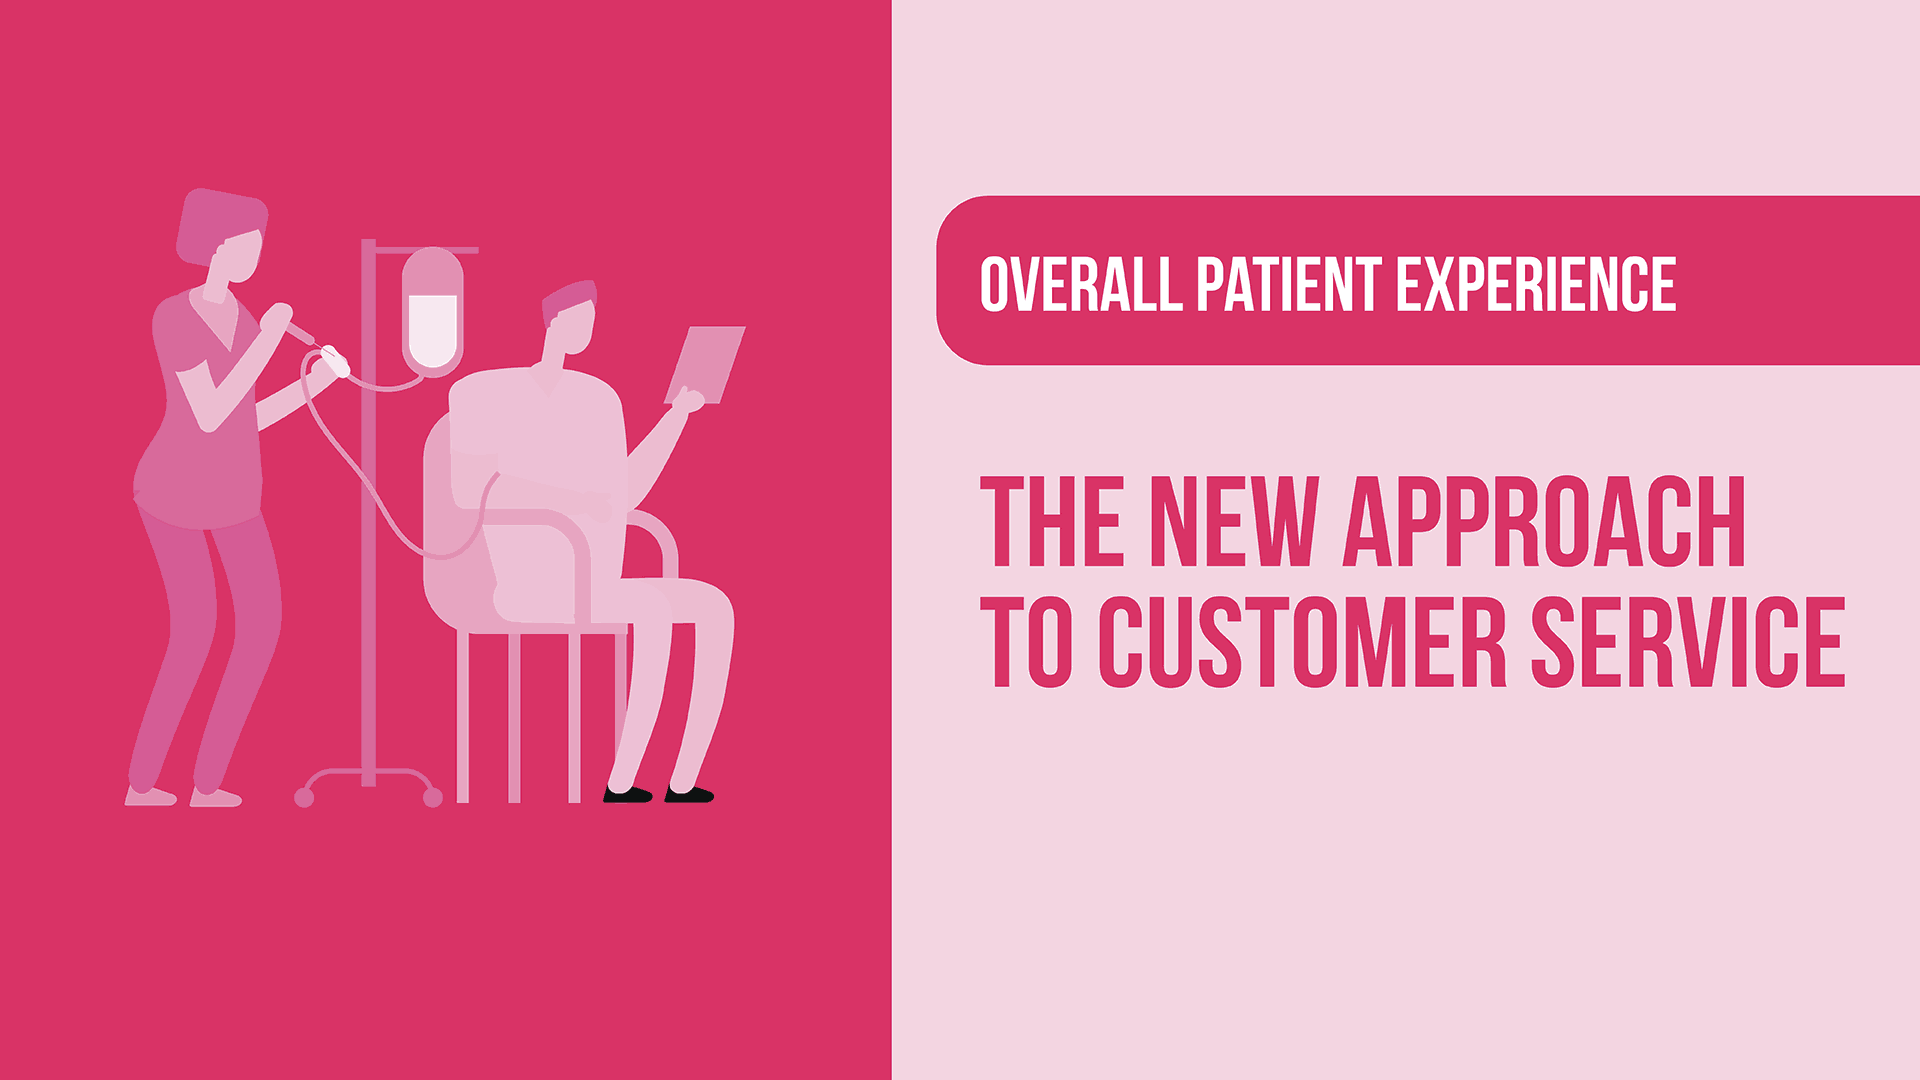 Overall Patient Experience: The NEW Approach to Customer Service